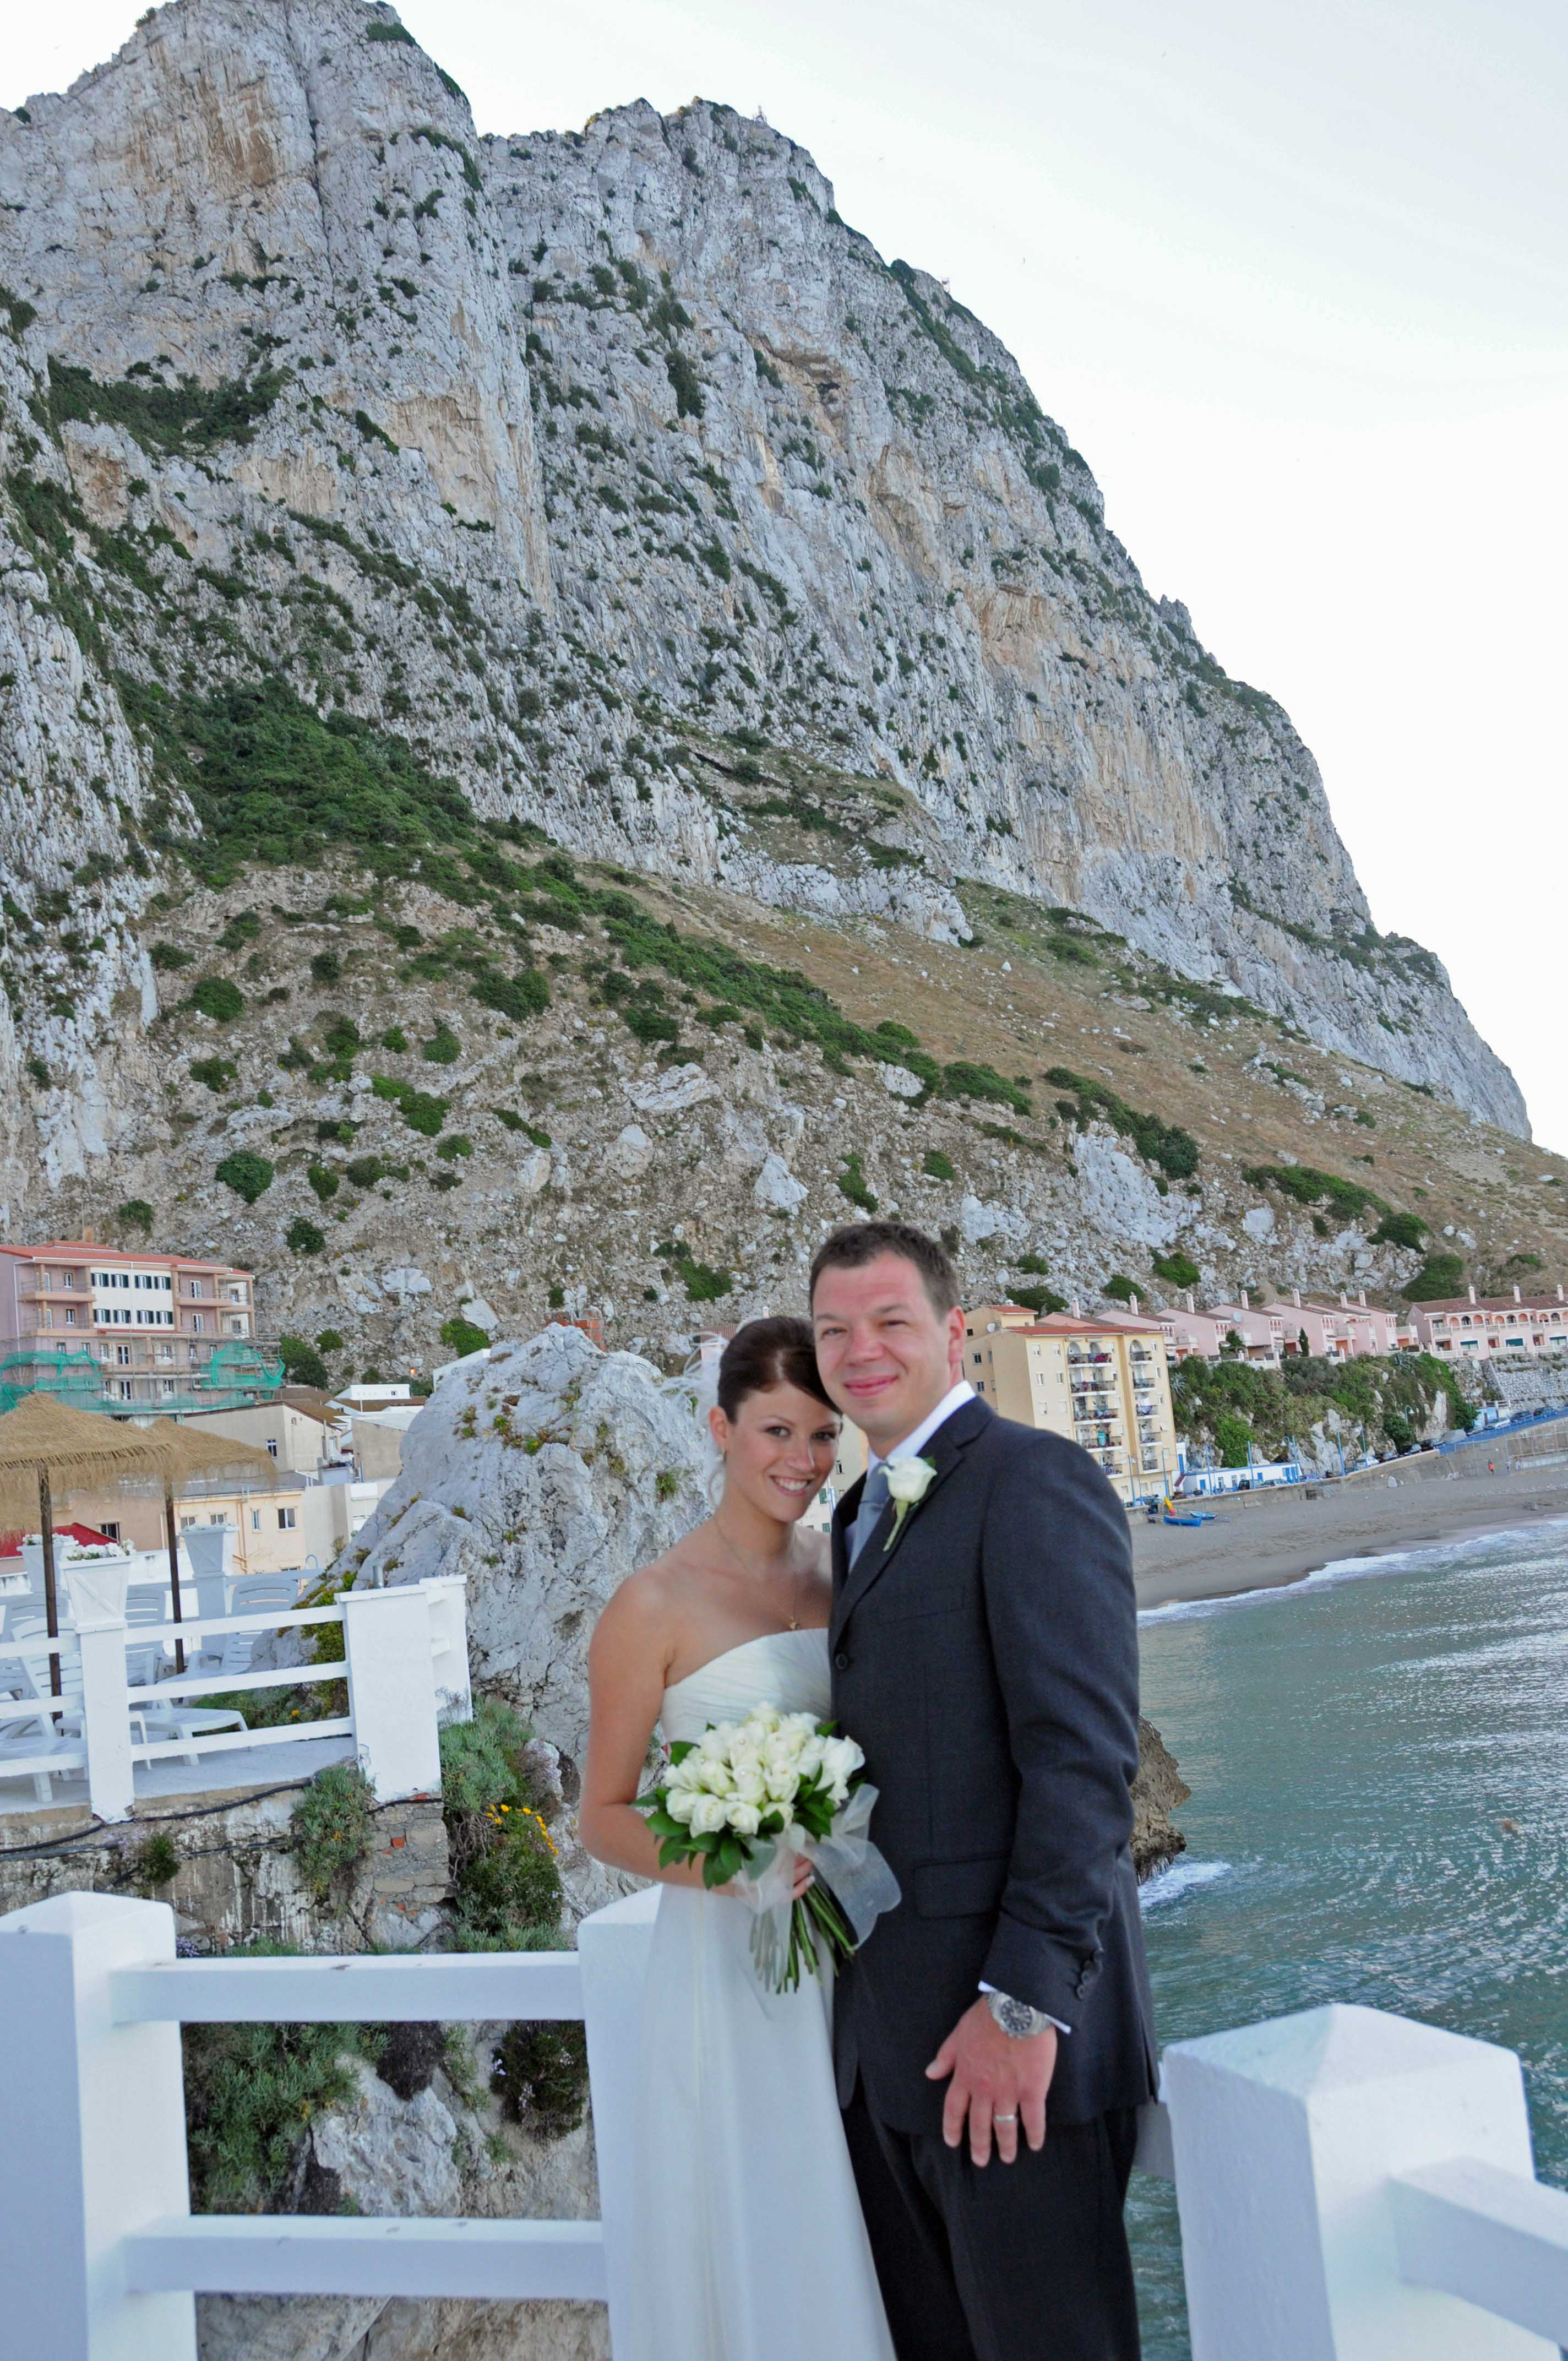 Wedding in Gibraltar, near Spain